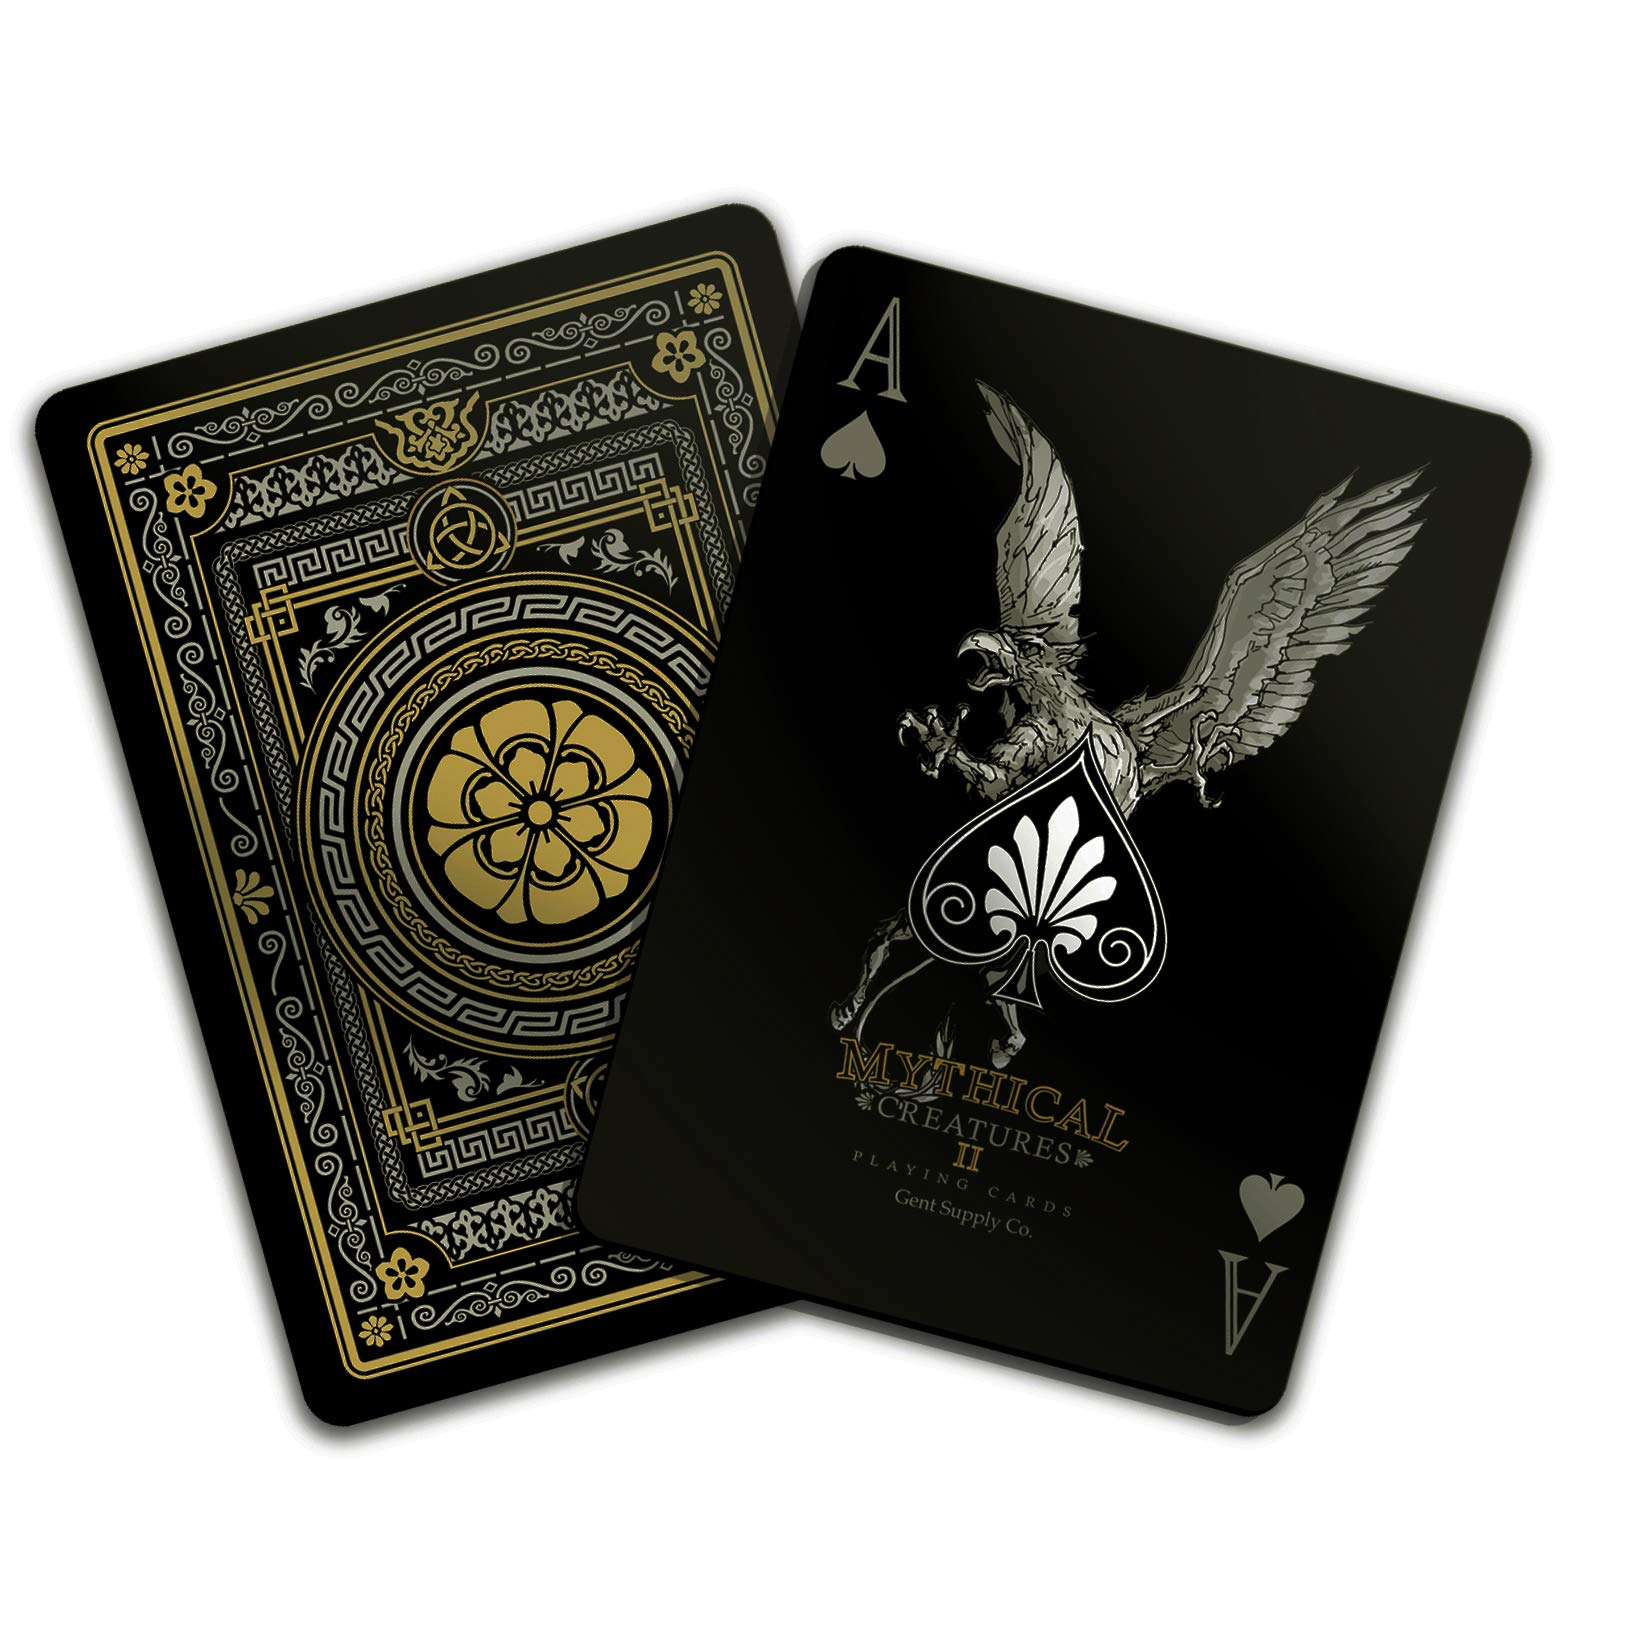 Gent Supply Plastic Waterproof Mythical Creatures II (All New Creatures) - Black Silver & Gold Edition Playing Cards